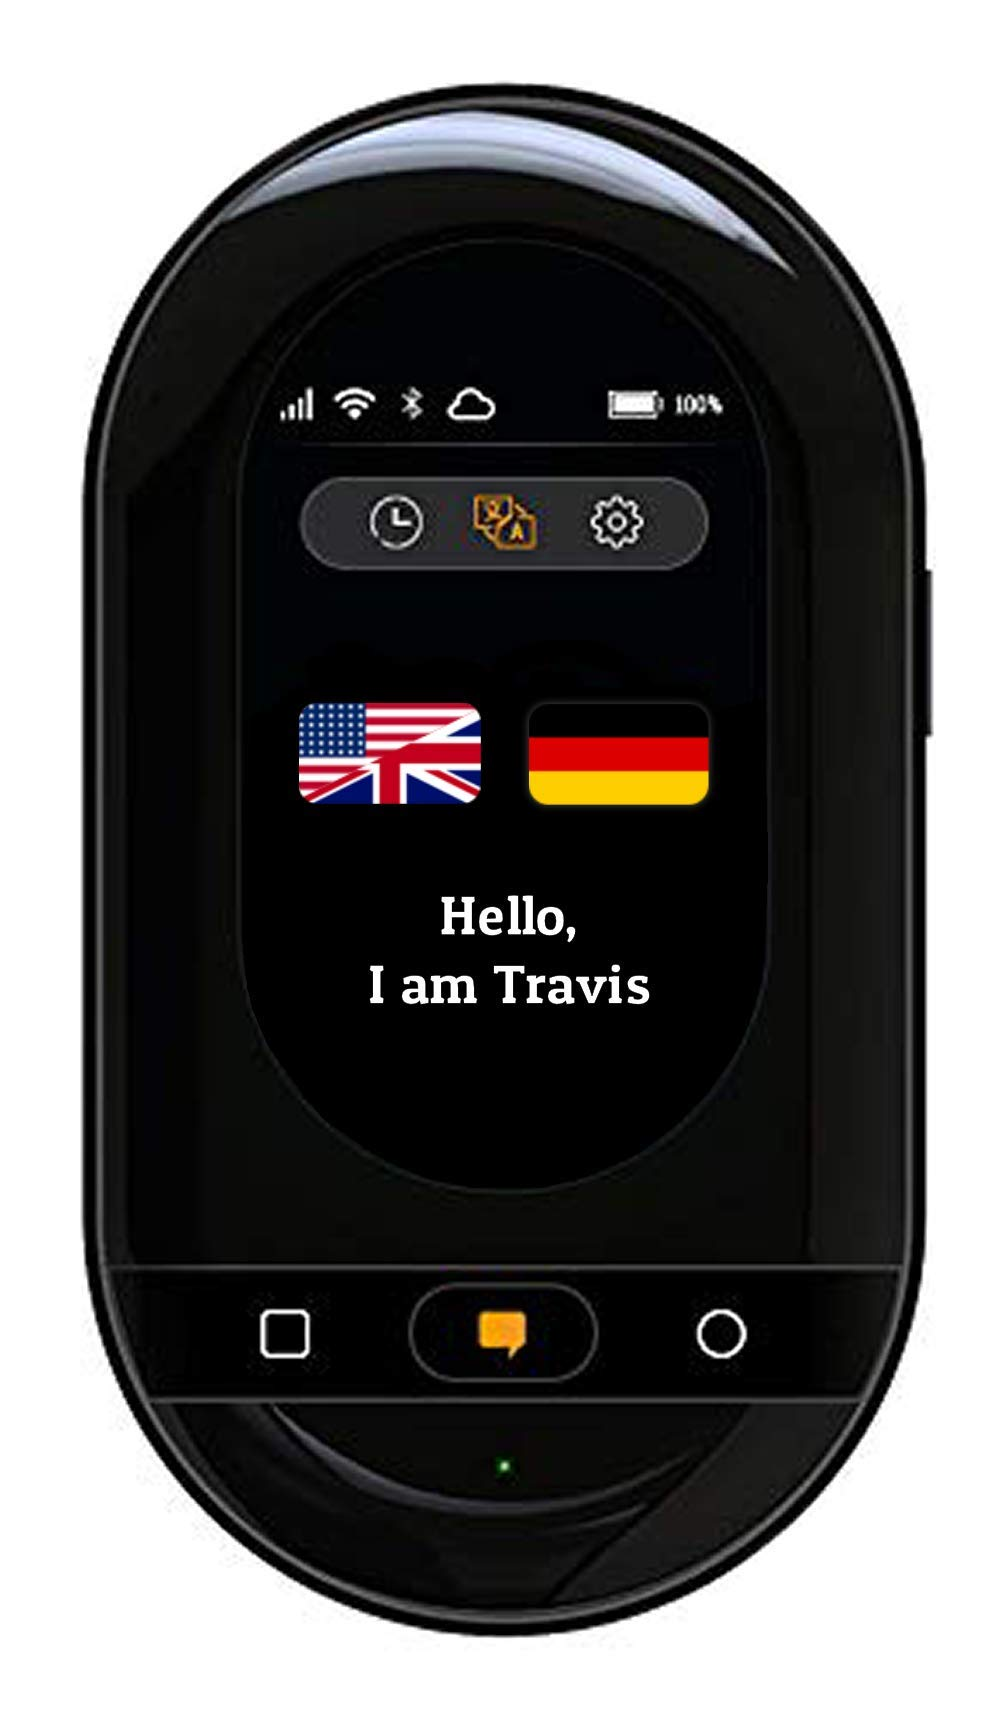 Travis Touch Smart Pocket Translator - 1GB Global Data SIM Card incl, Two  Way Translations, Online/Offline Mode, Touch Screen, Hotspot